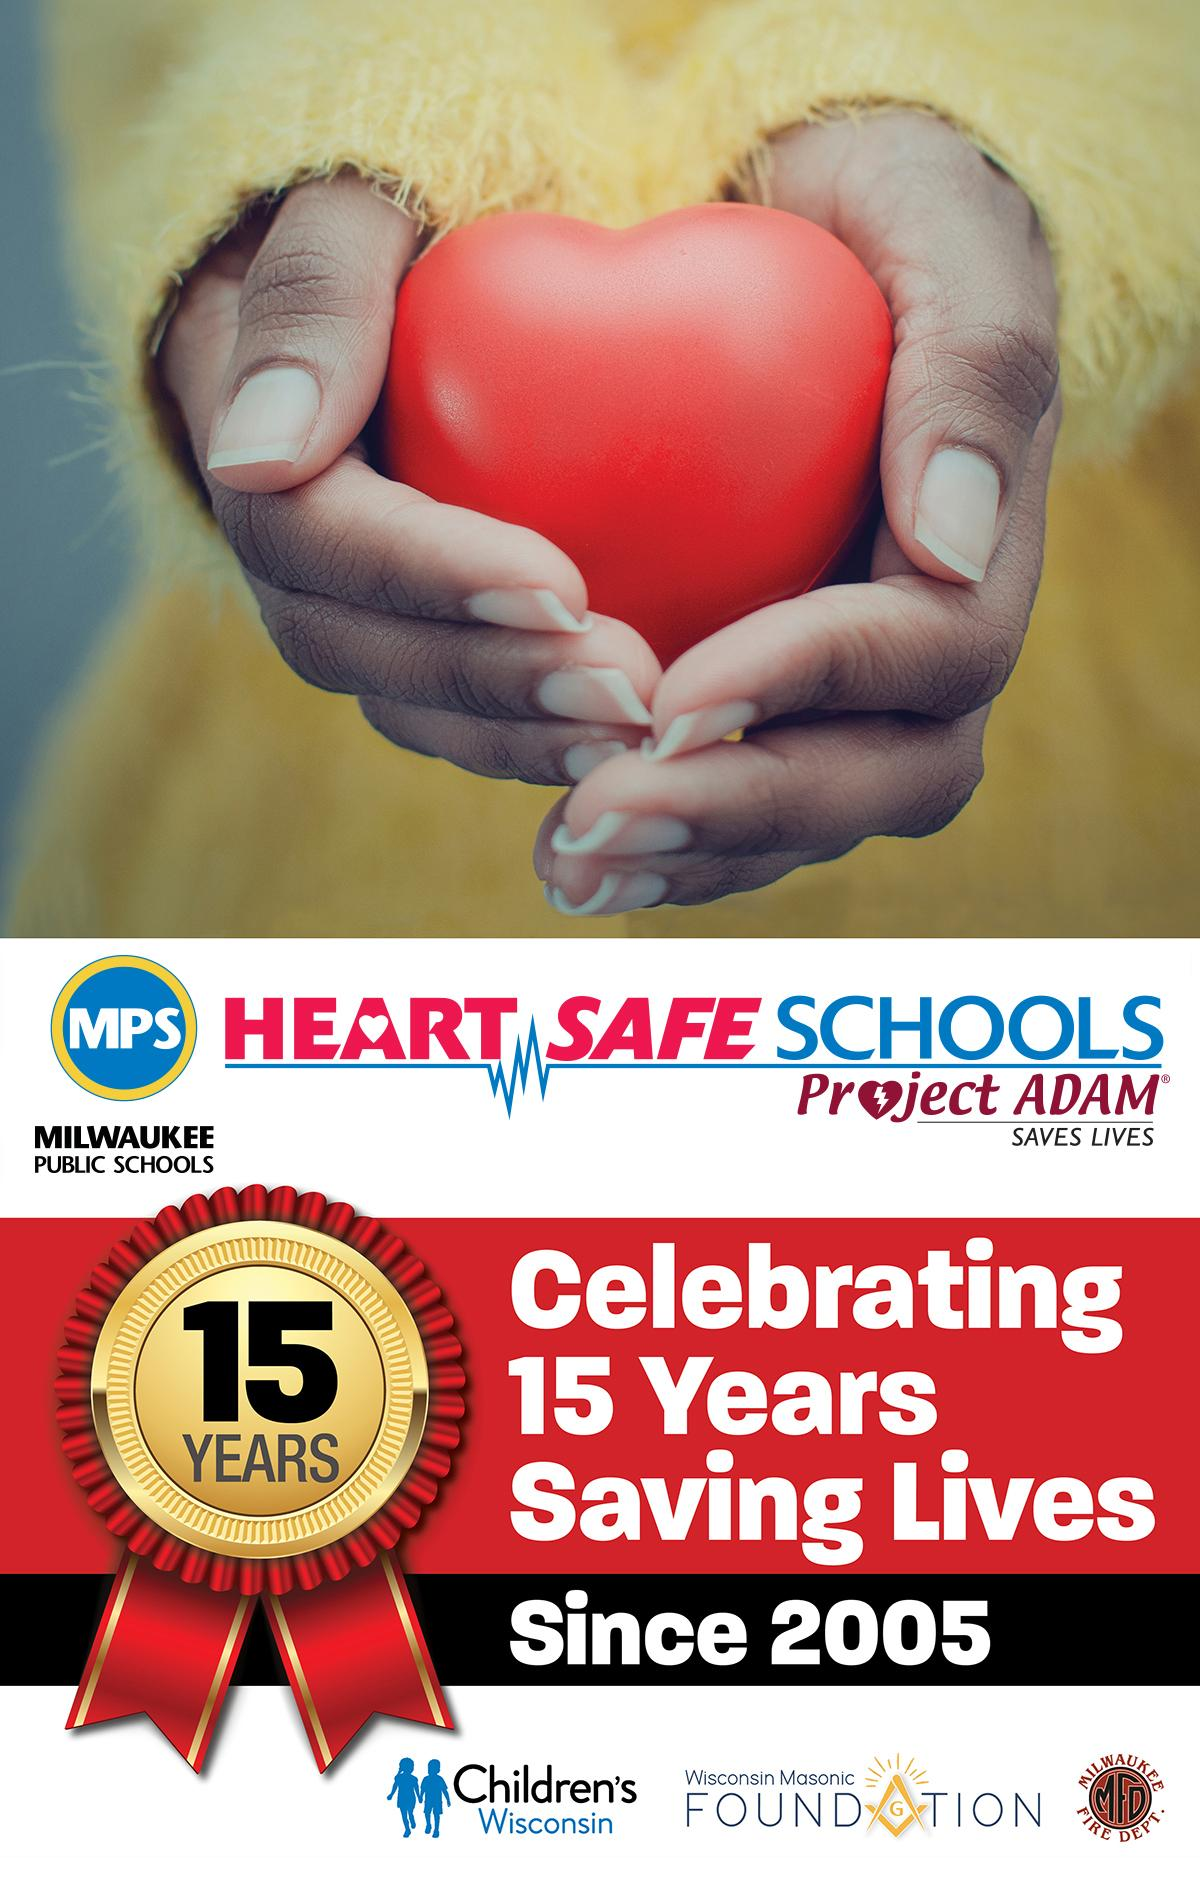 Milwaukee Public Schools celebrates 15 years of saving lives with AEDs